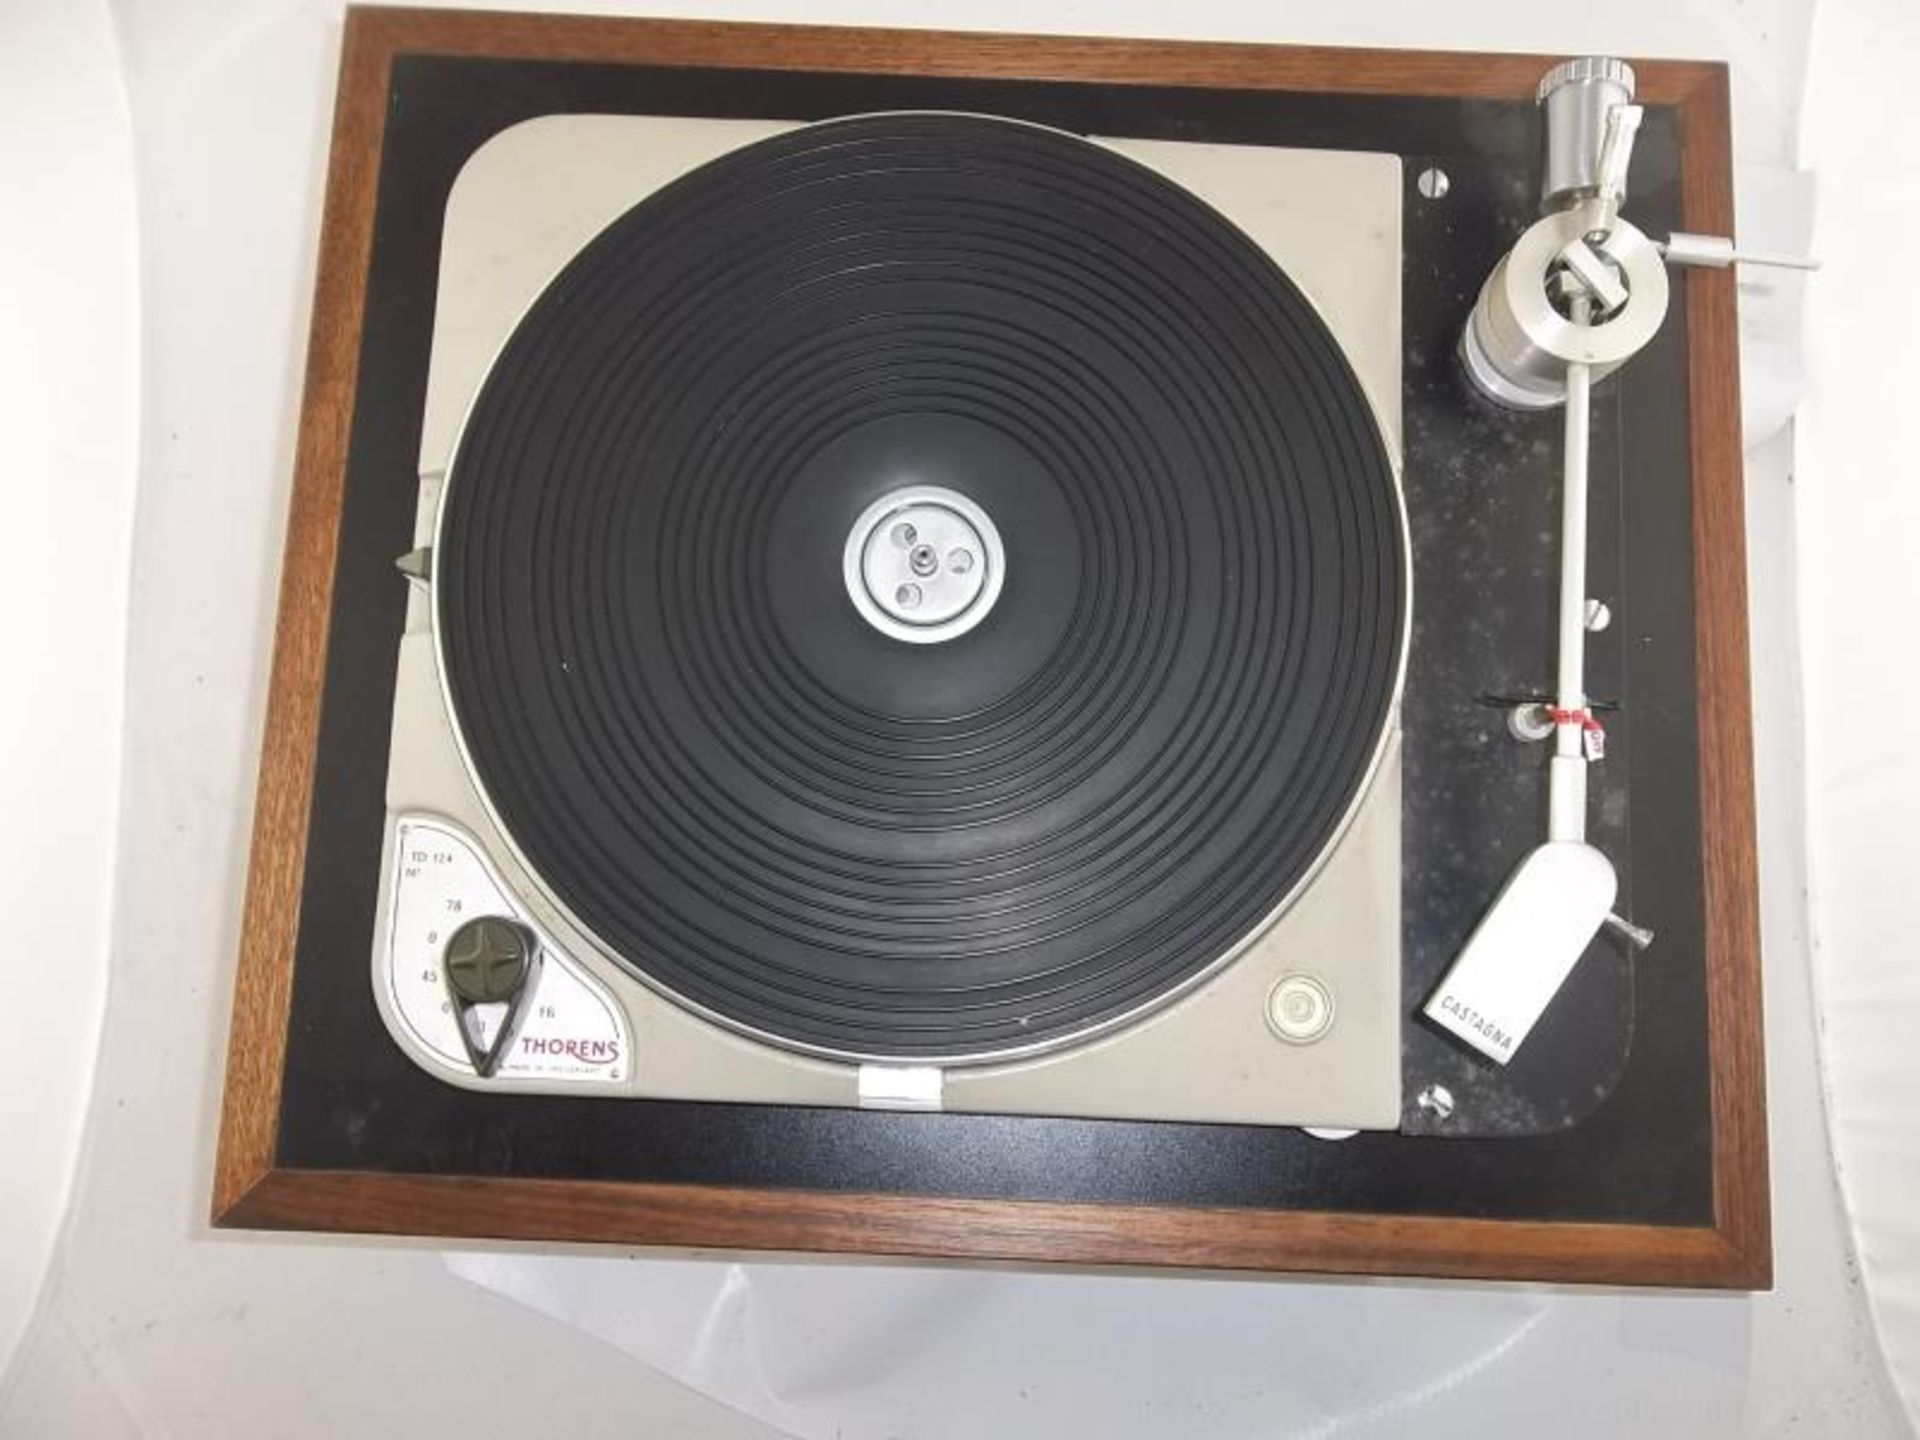 Lot 590 - Thorens TD 124 turntable, # 36829, made in Switzerland, Castagna head, 16, 33, 45 or 78